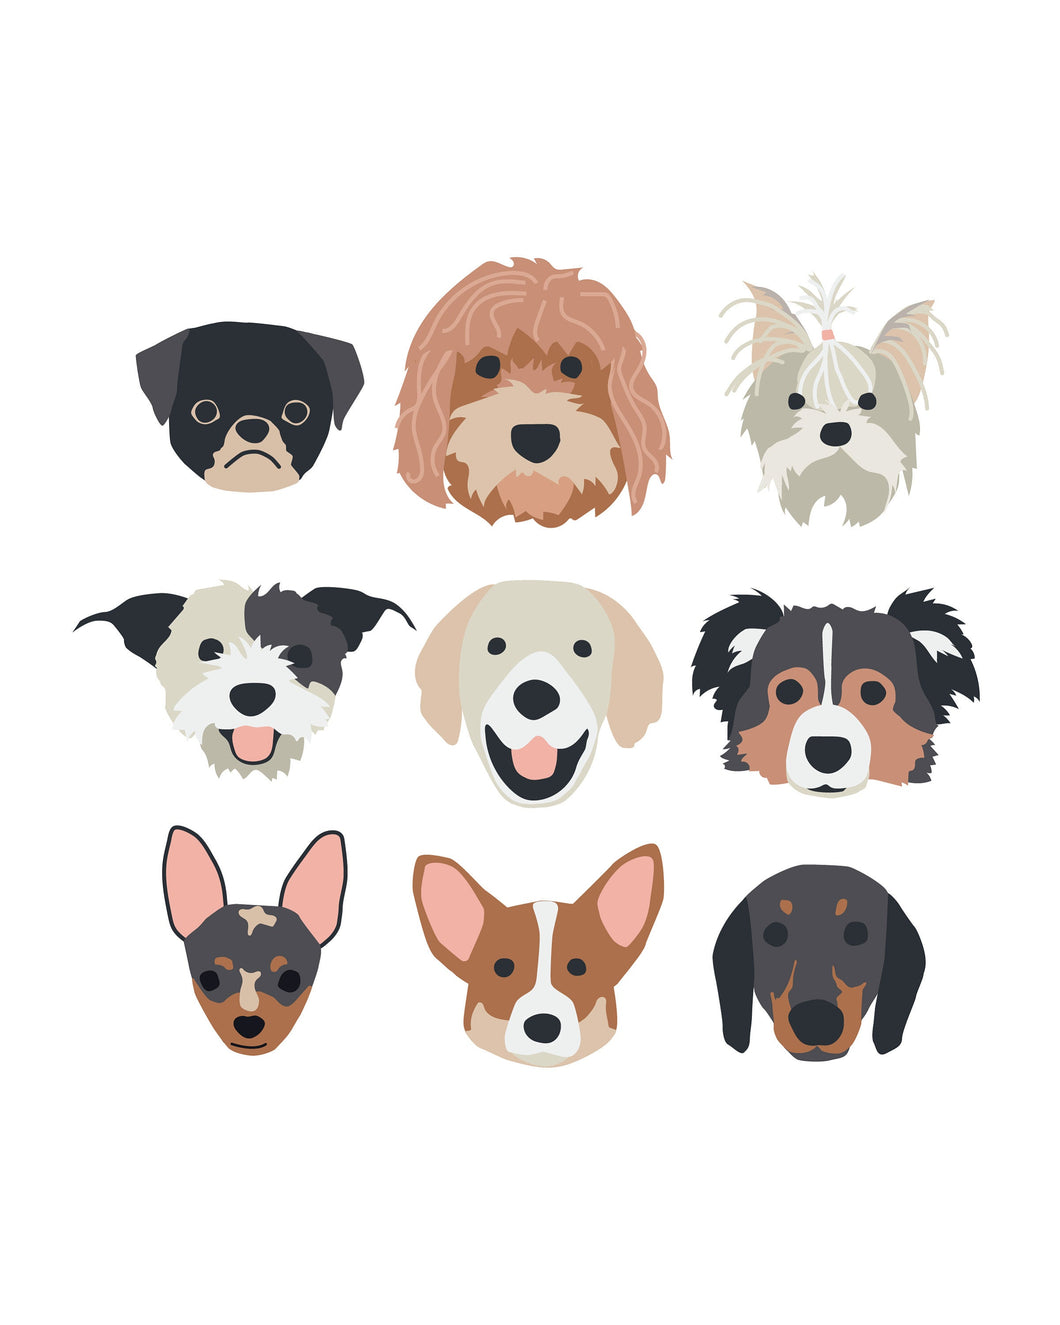 New Puppy Dog Faces (2.0) Posters for party and wall decor